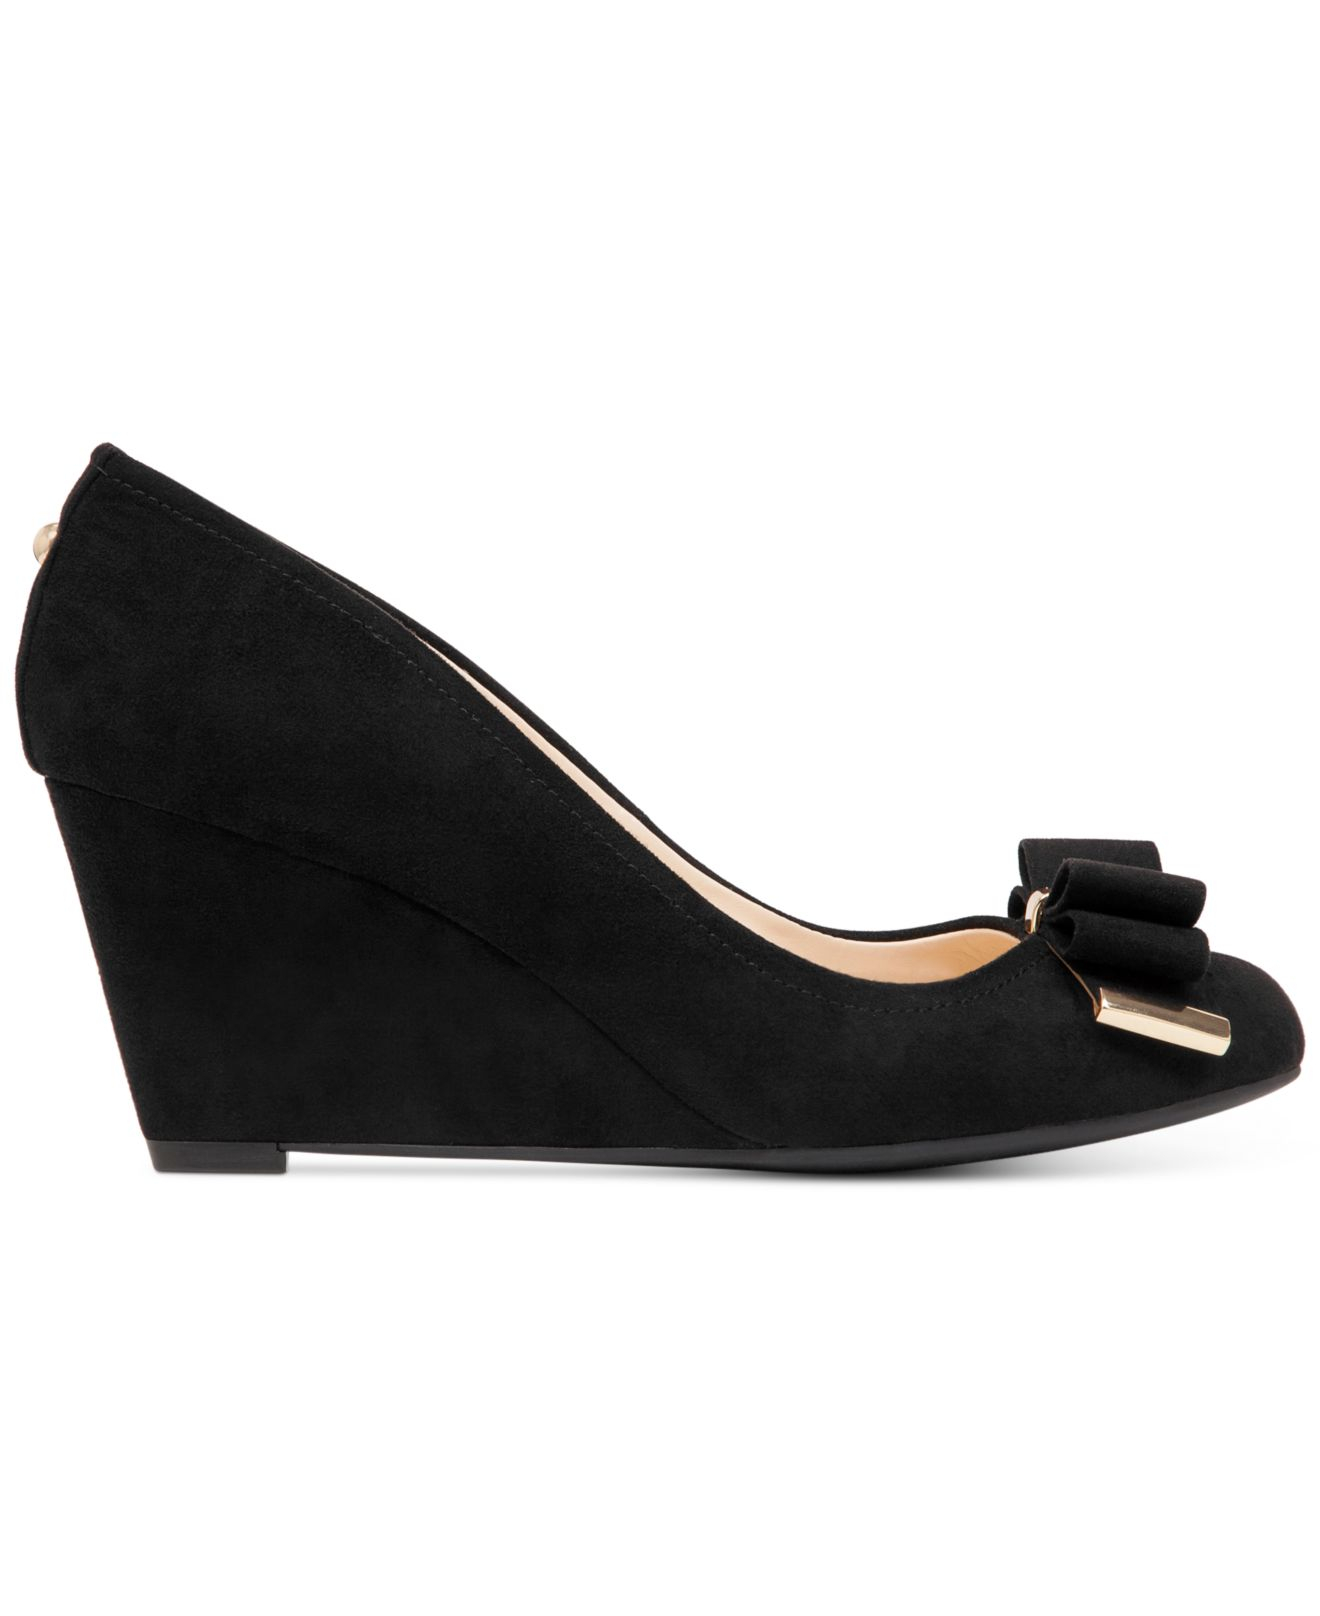 52ff055db79 Lyst - Jessica Simpson Slane Bow Wedges in Black